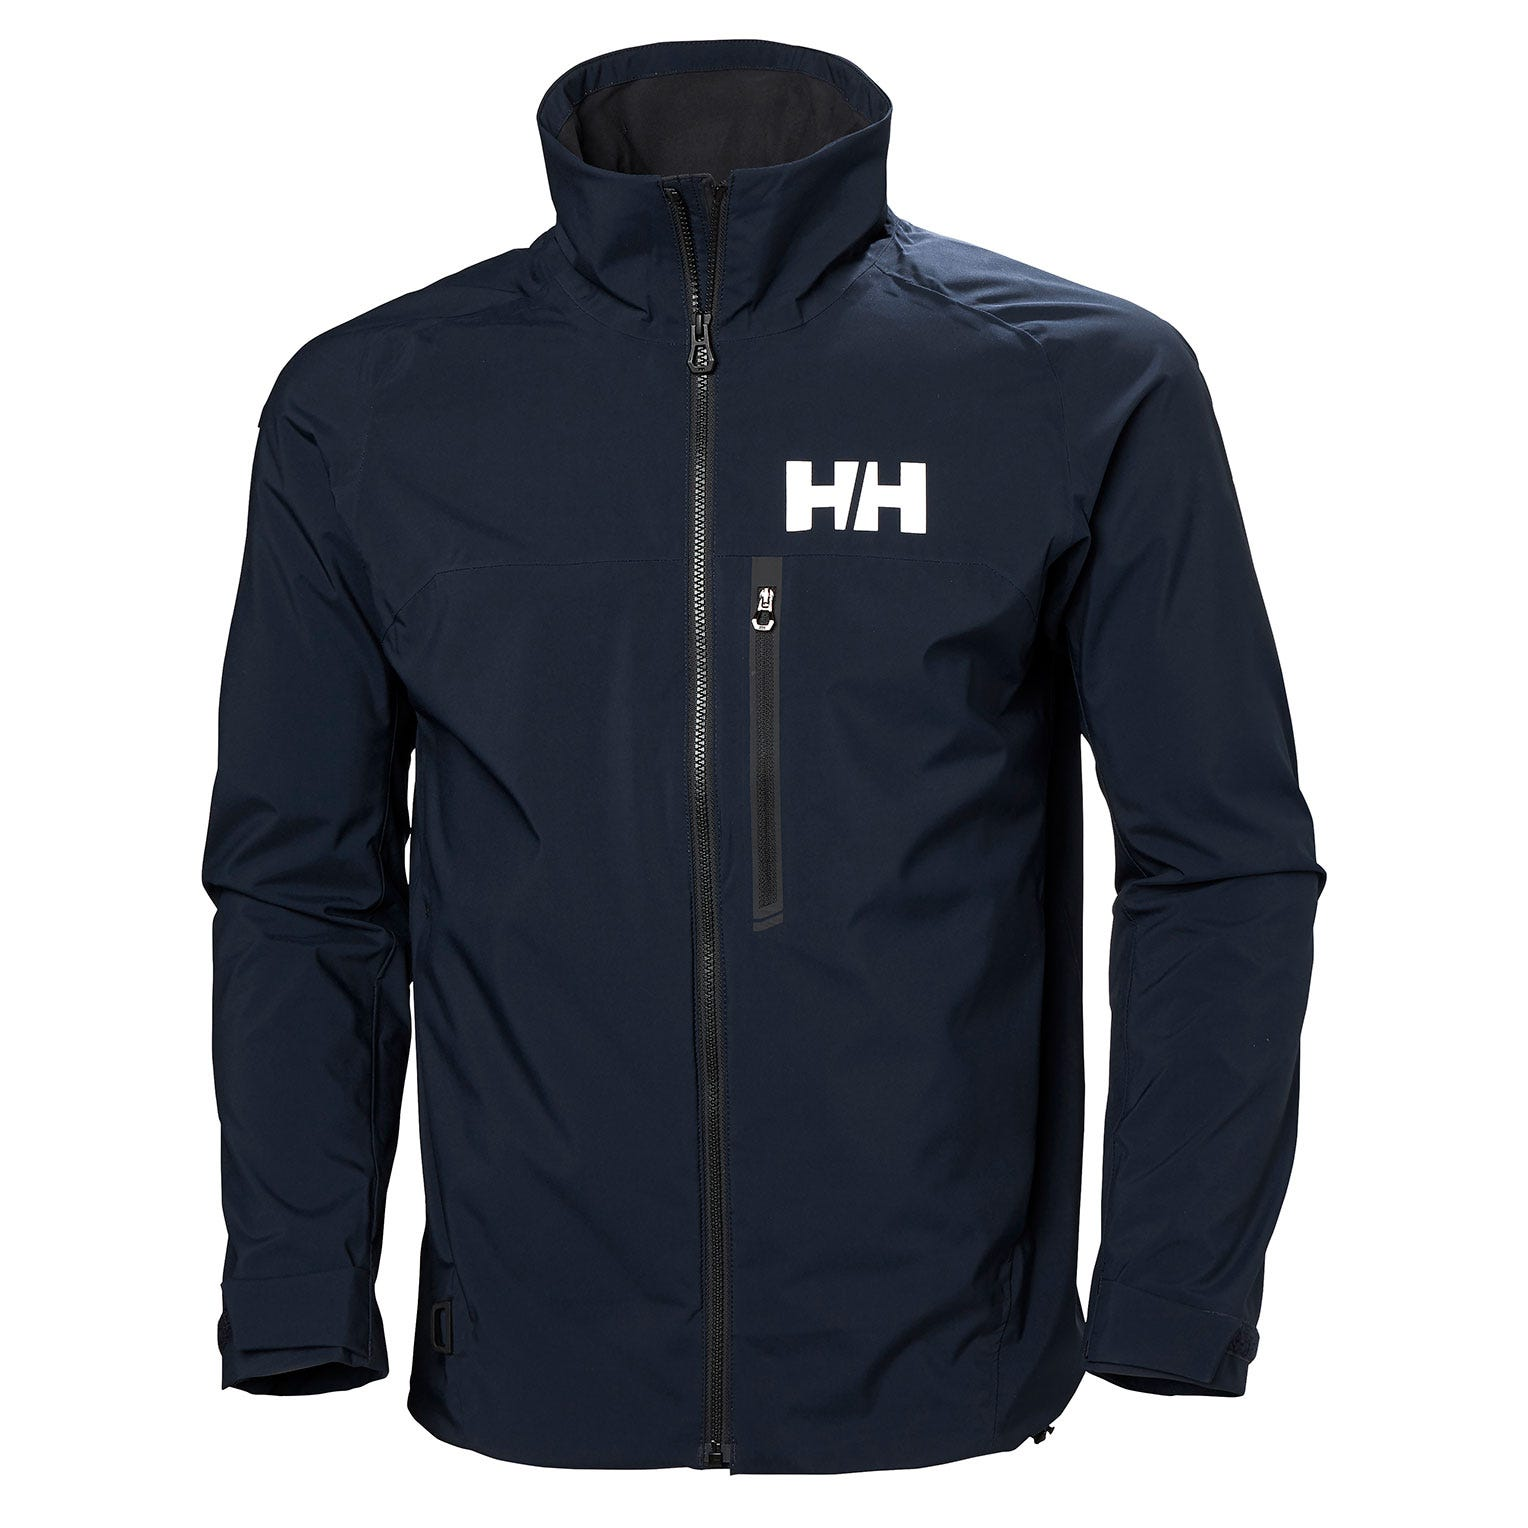 Helly Hansen Mens Hp Racing Sailing Jacket Navy L